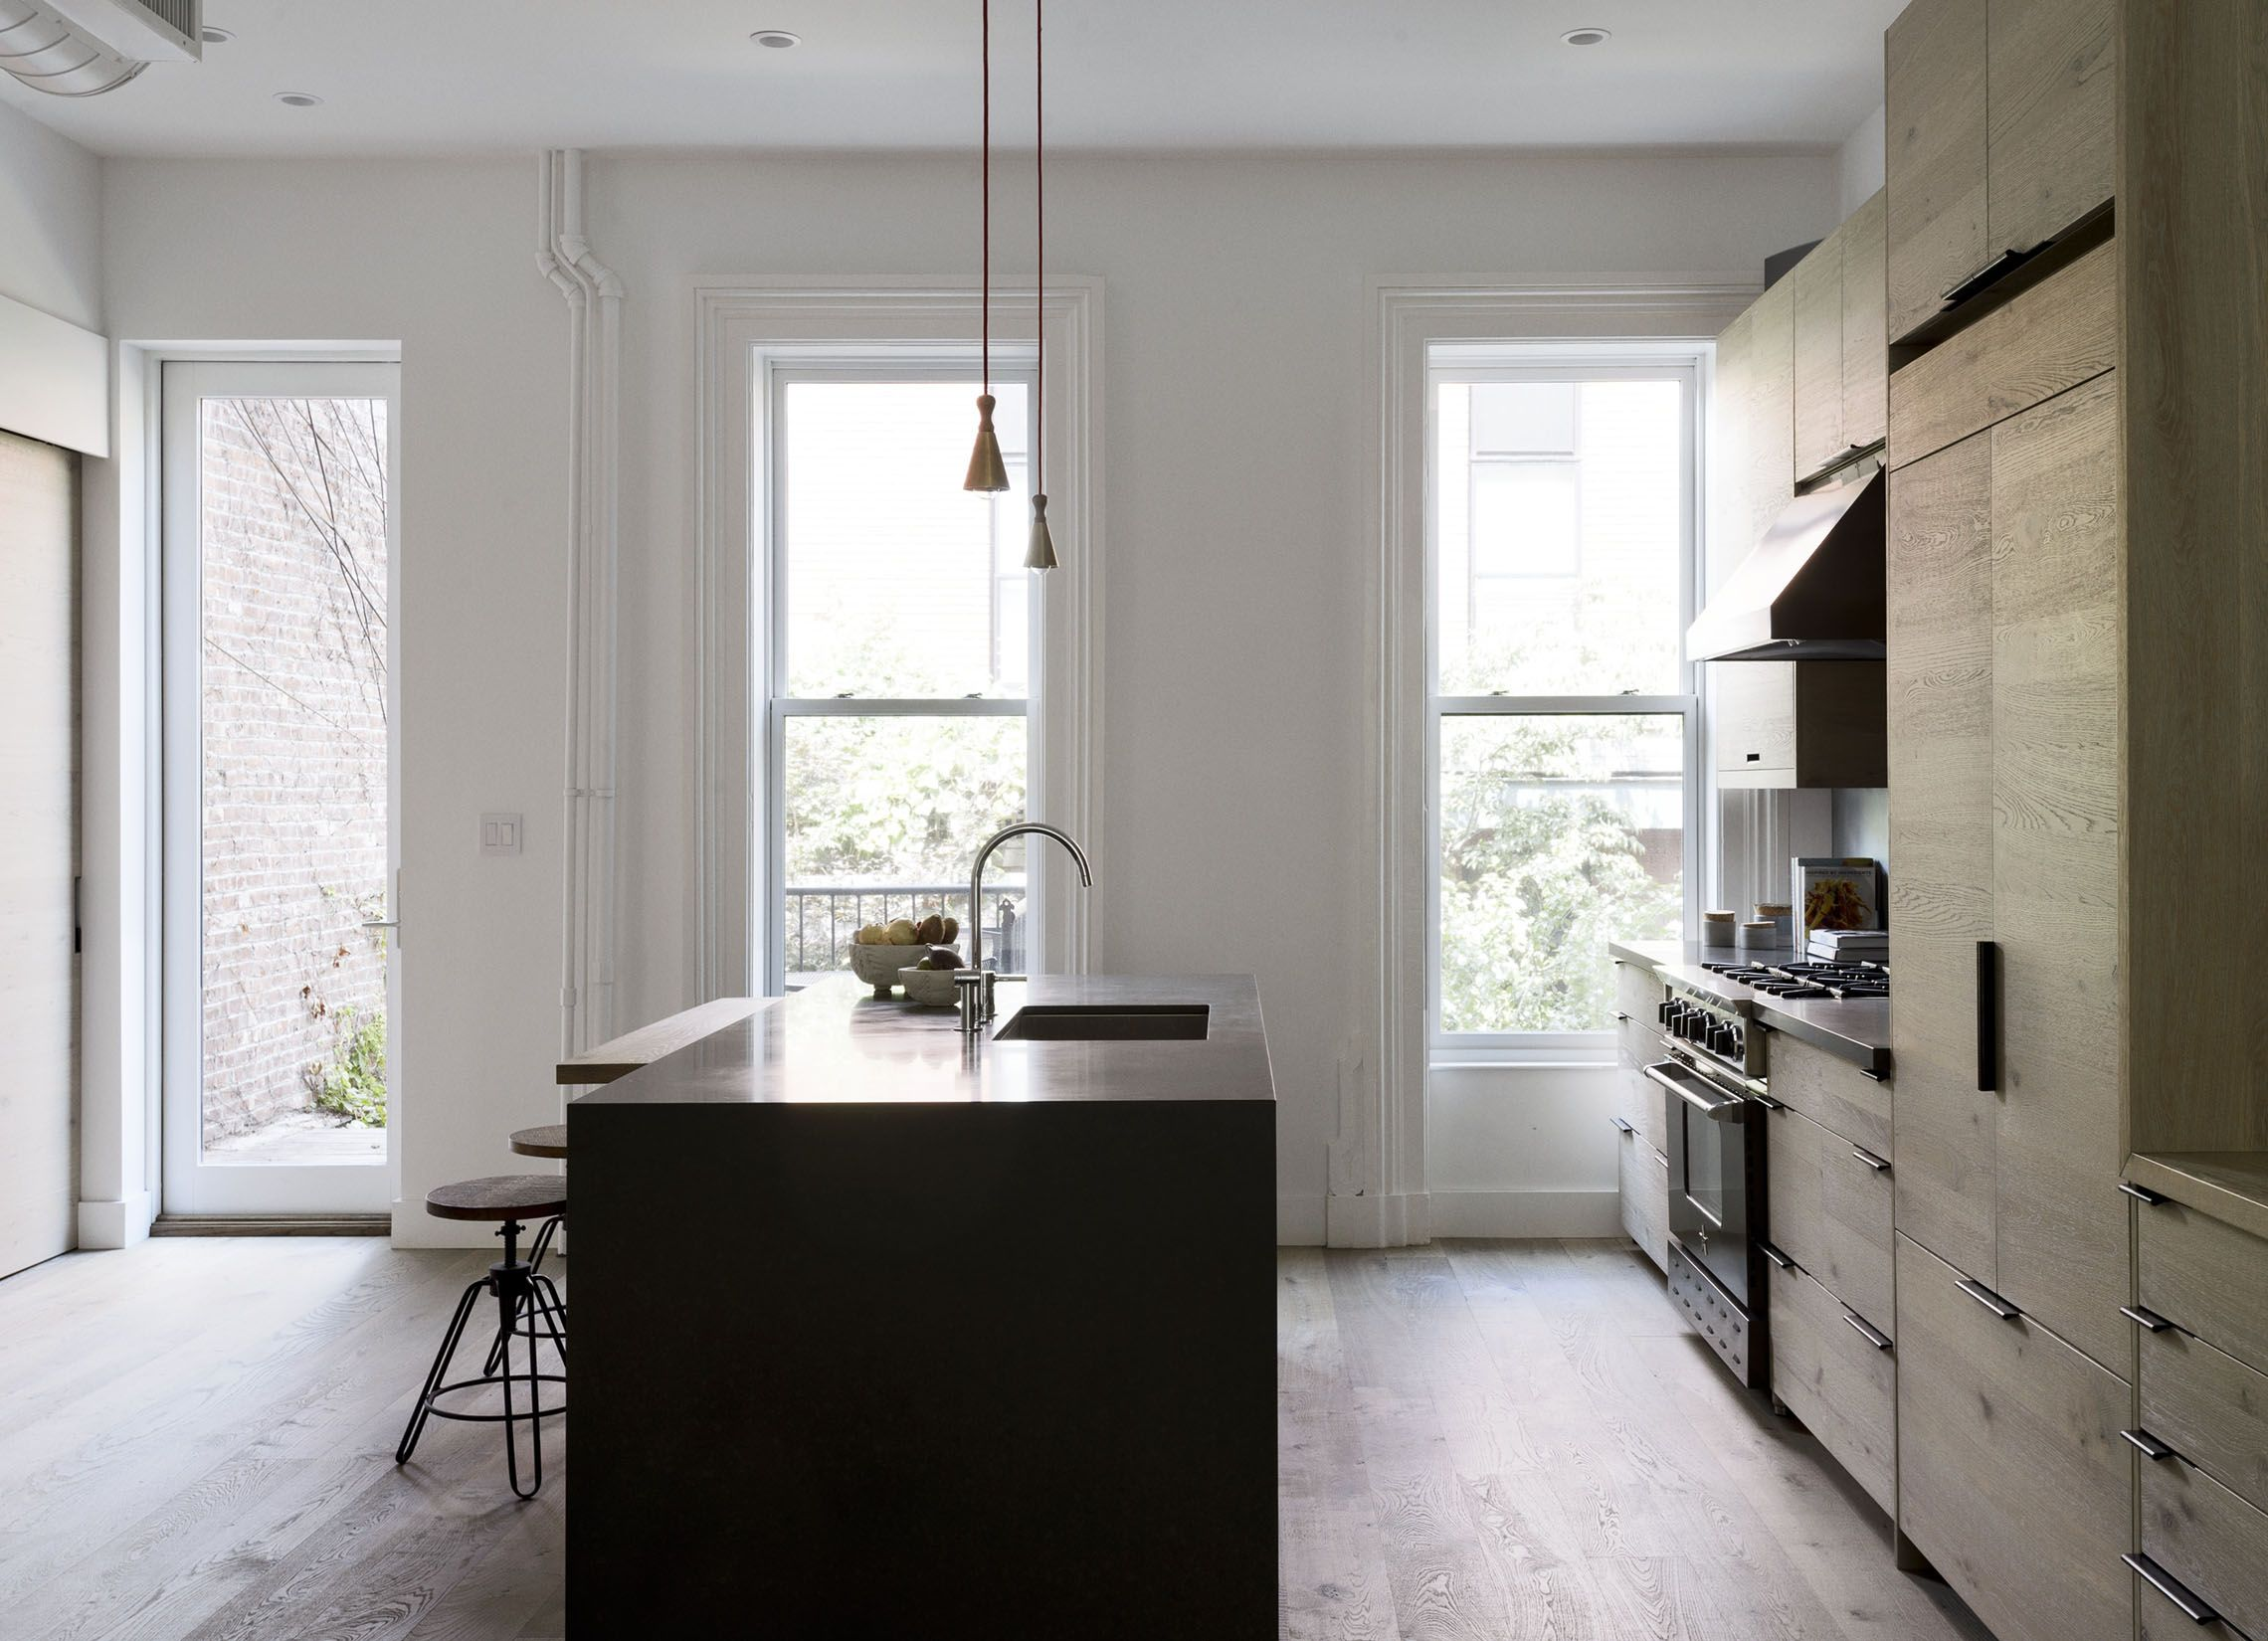 Brooklyn kitchen design with custom wood cabinets and quartzite ...